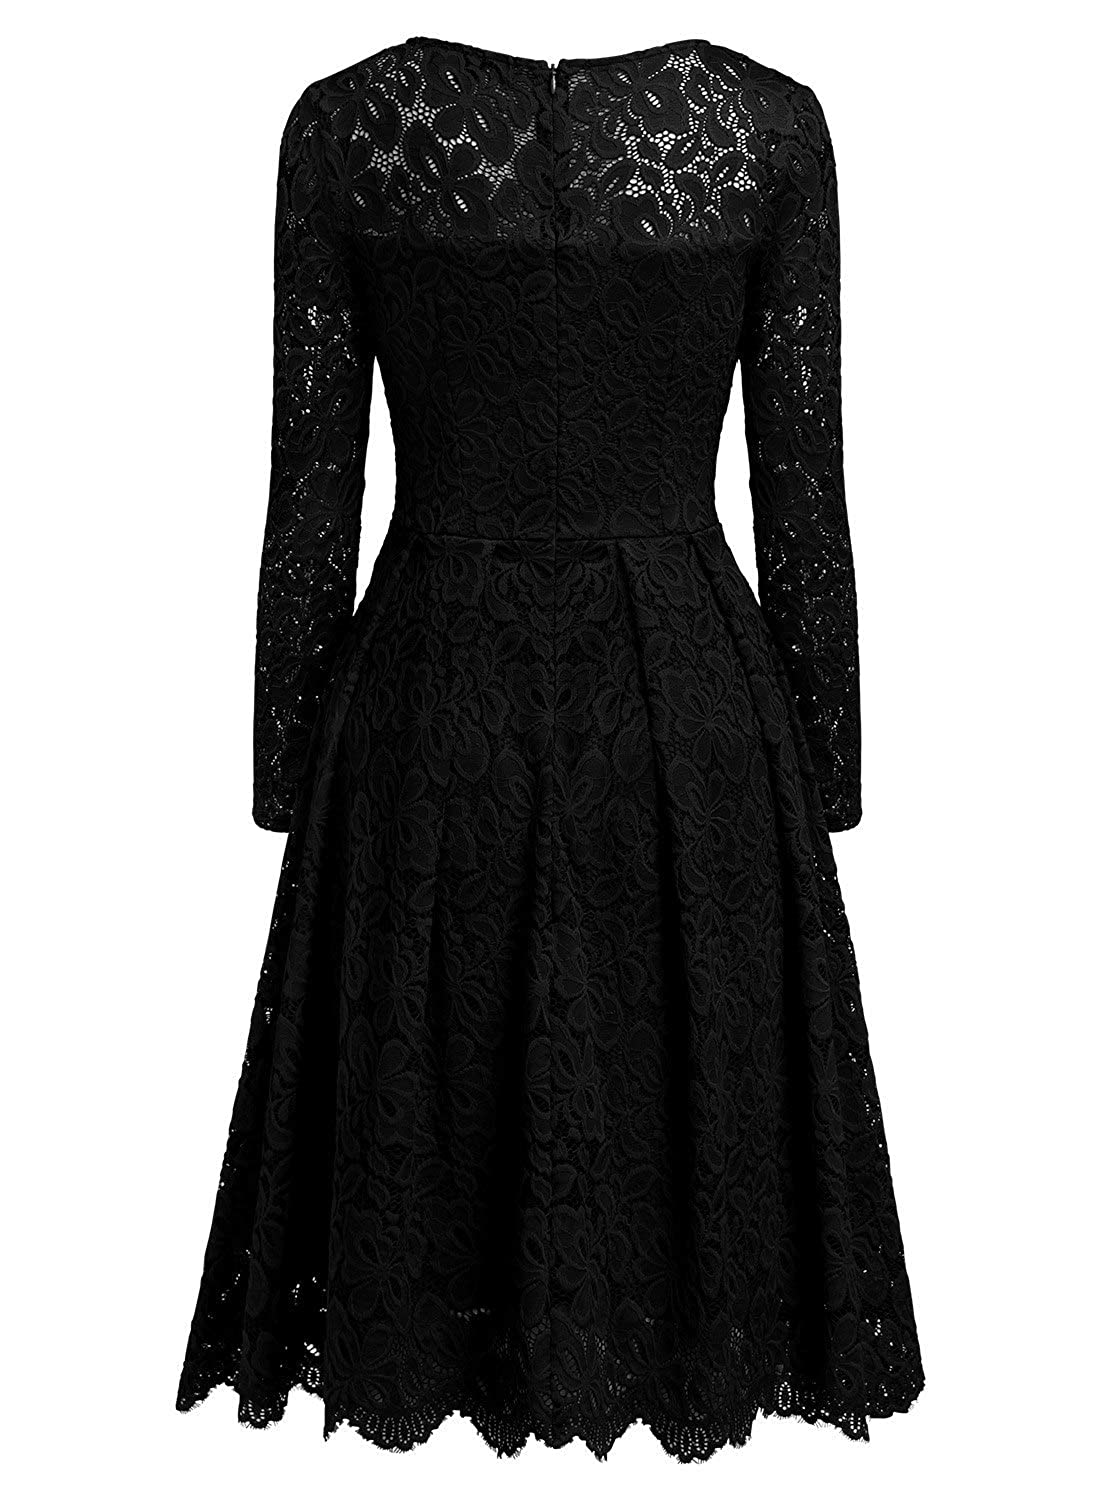 MISSMAY Womens Vintage Floral Lace Long Sleeve Boat Neck Cocktail Party Swing Dress